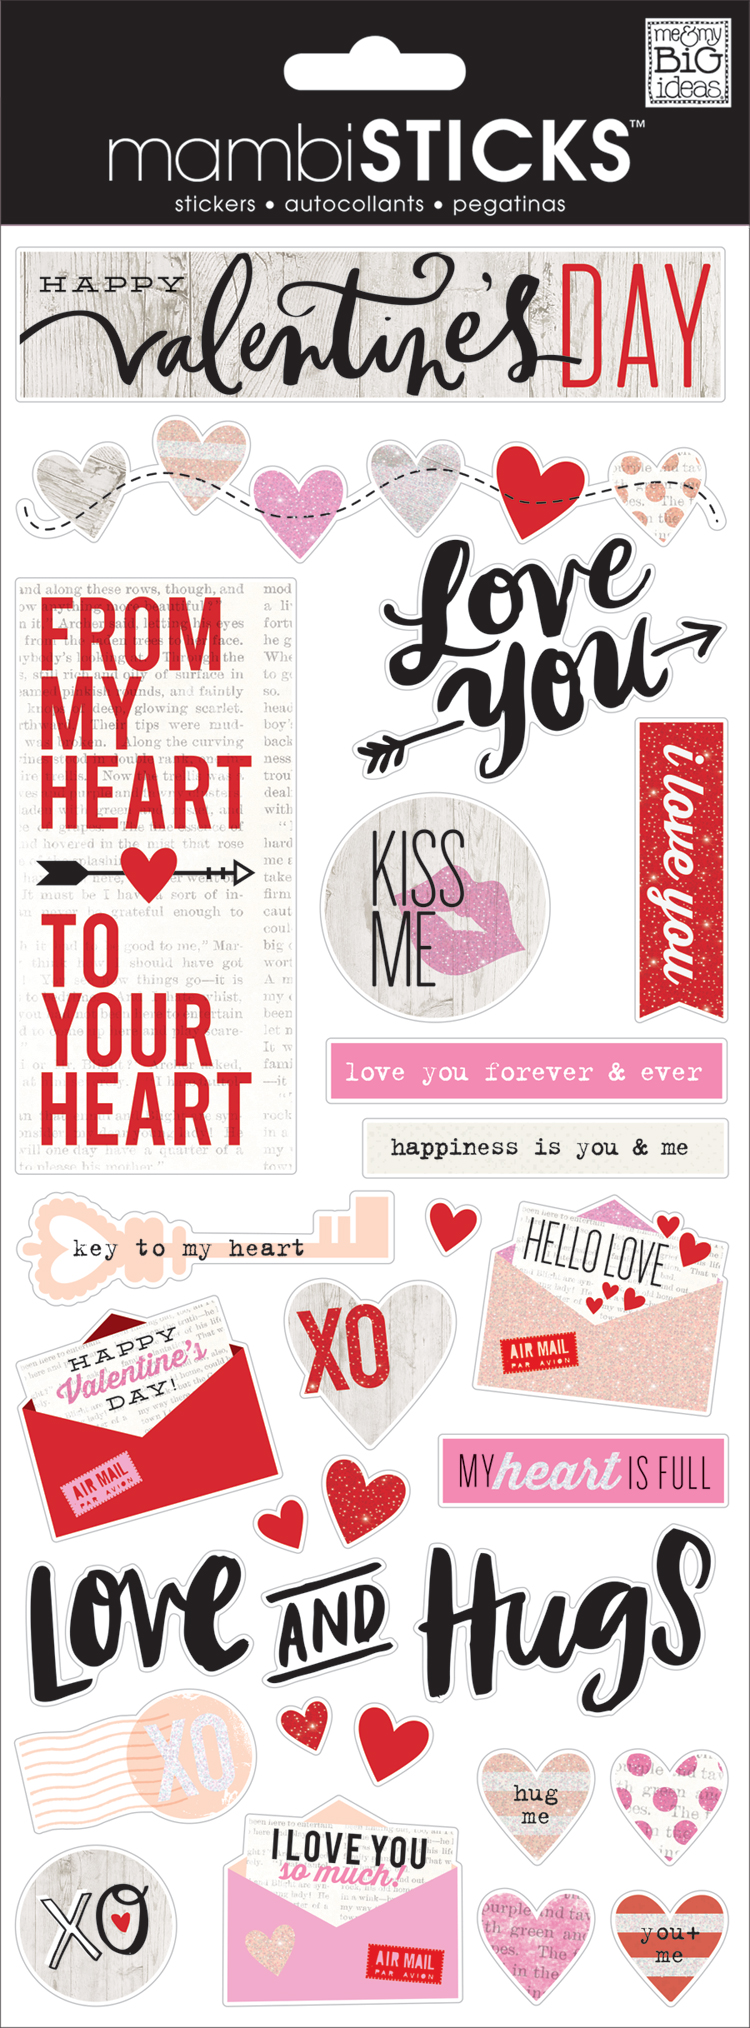 'Happy Valentine's Day' mambiSTICKS stickers | me & my BIG ideas.jpg